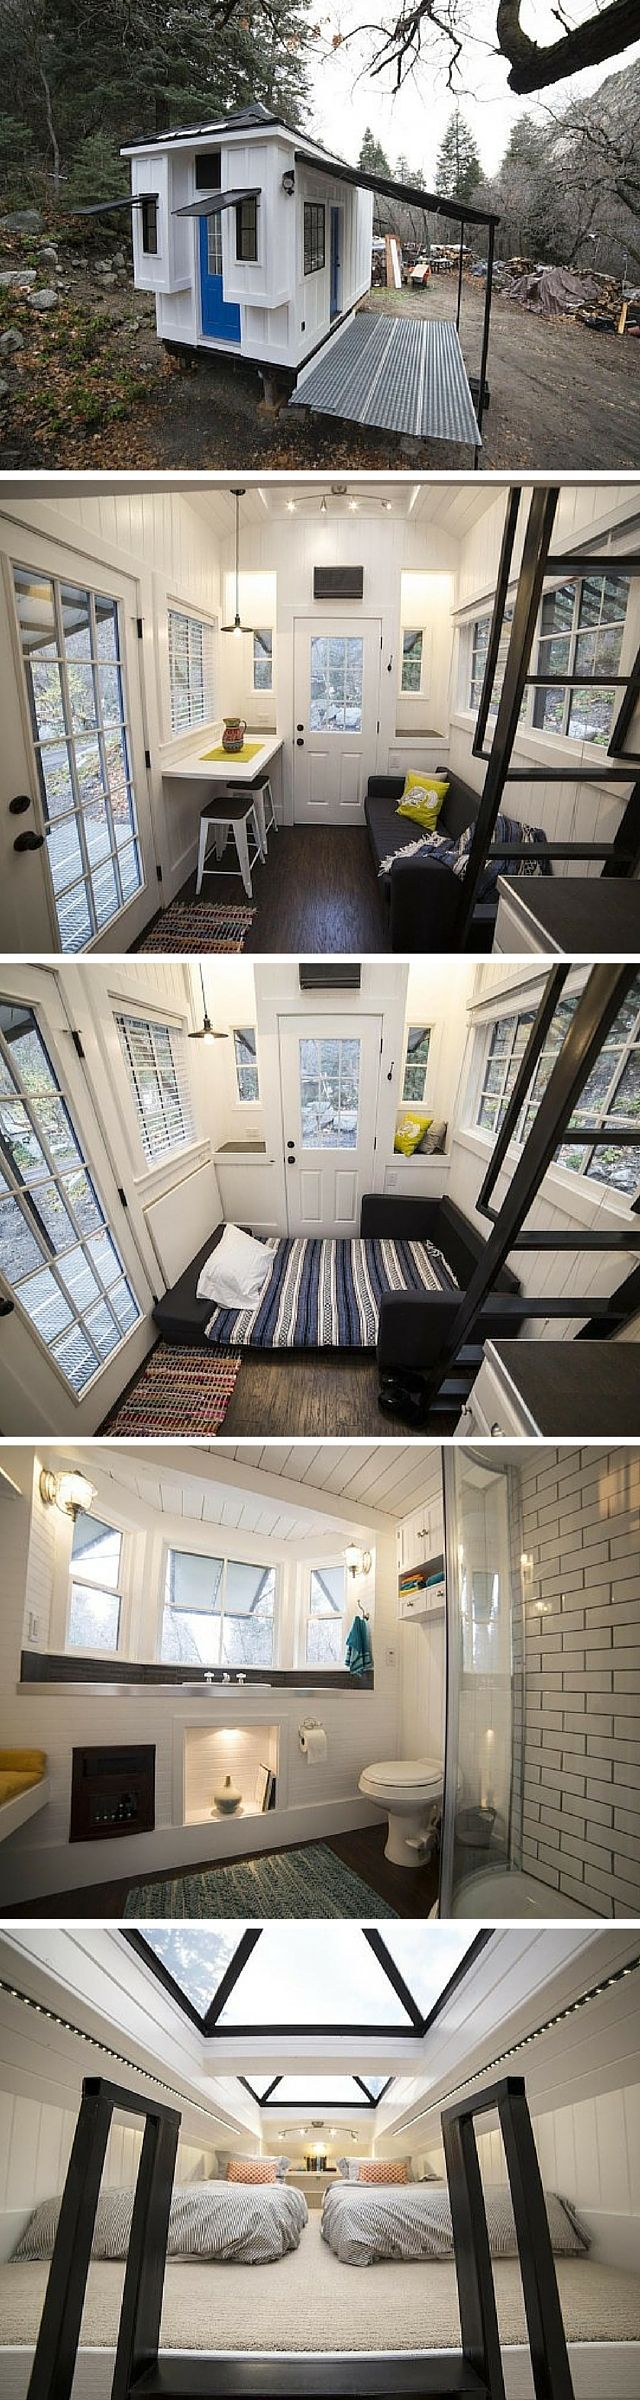 A 192 sq ft tiny house in Utah